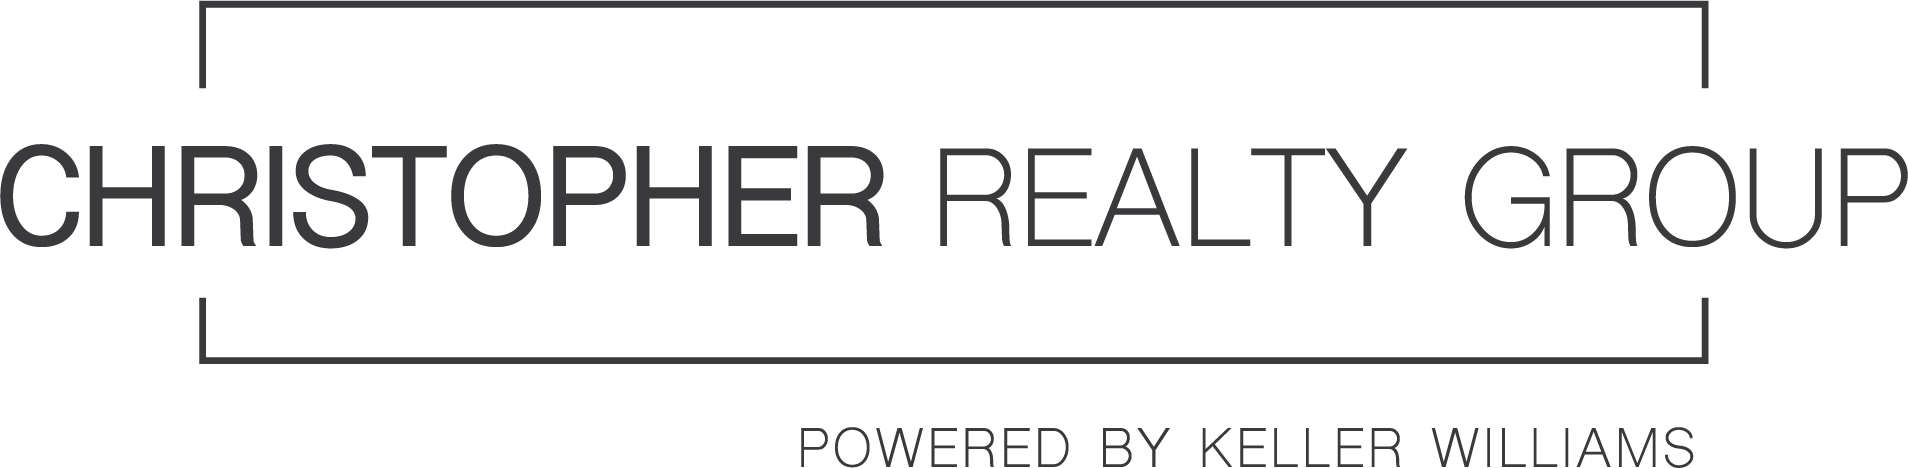 Christopher Realty Group logo